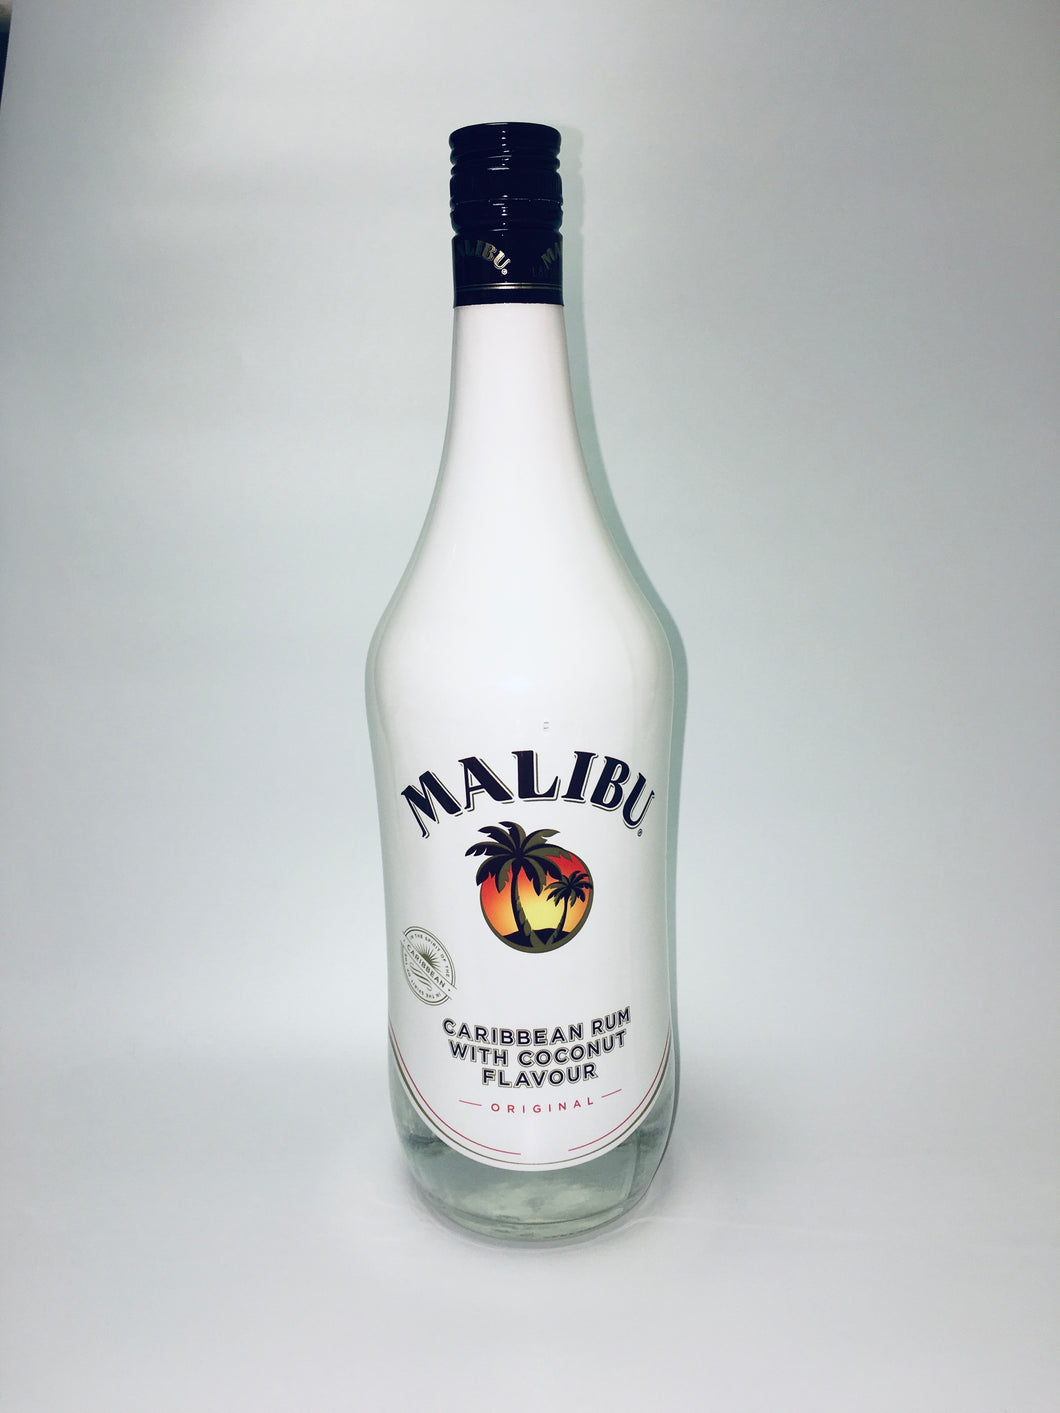 Malibu Caribbean Rum with Coconut Flavour, 1L